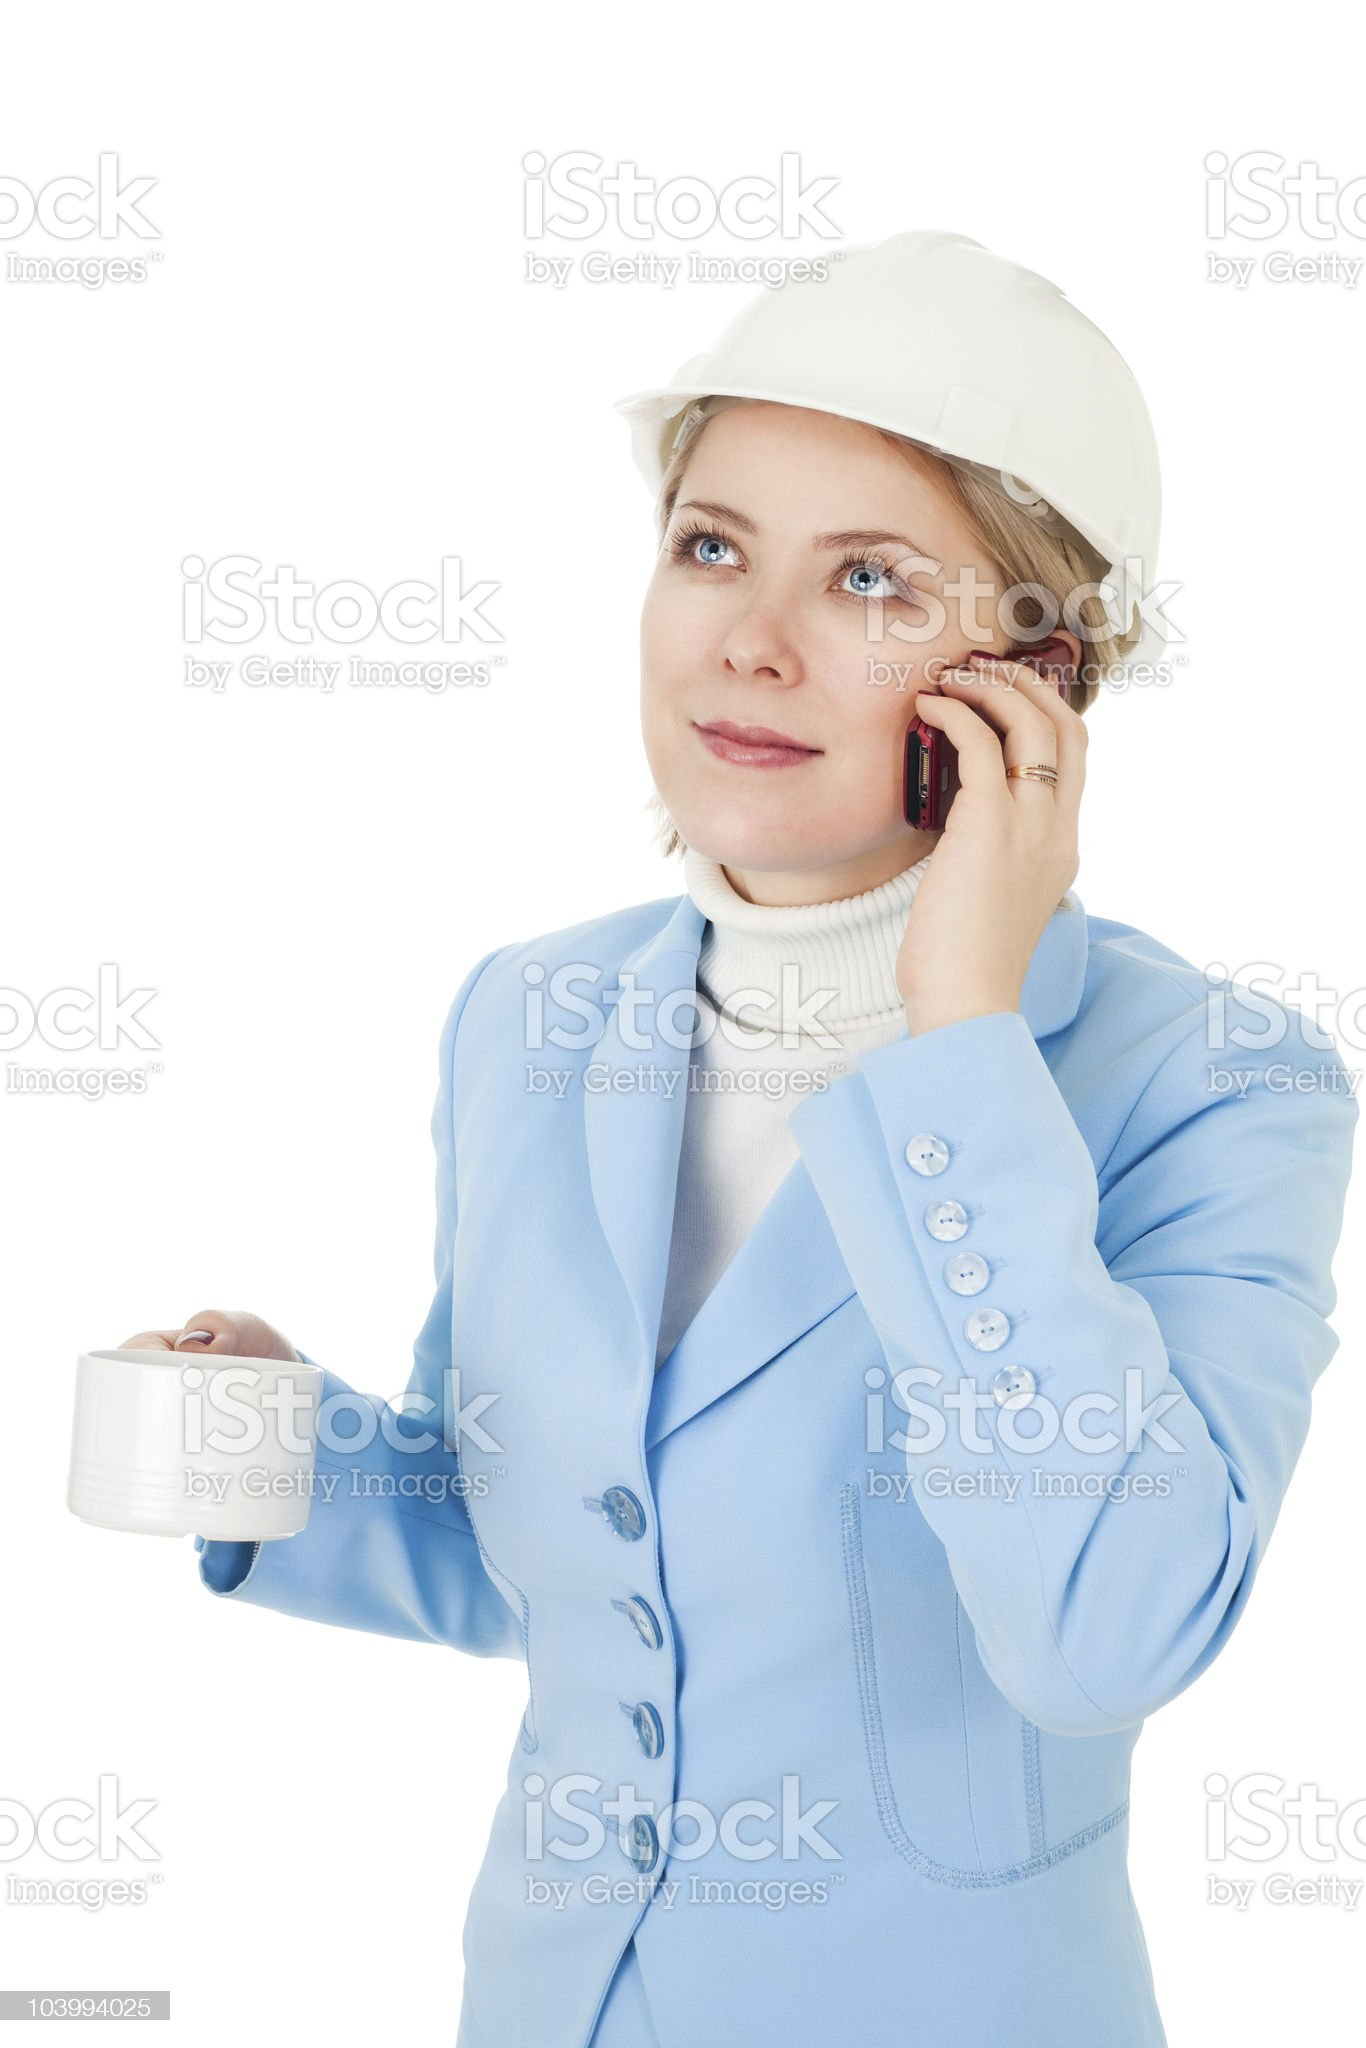 architect woman calling by phone royalty-free stock photo